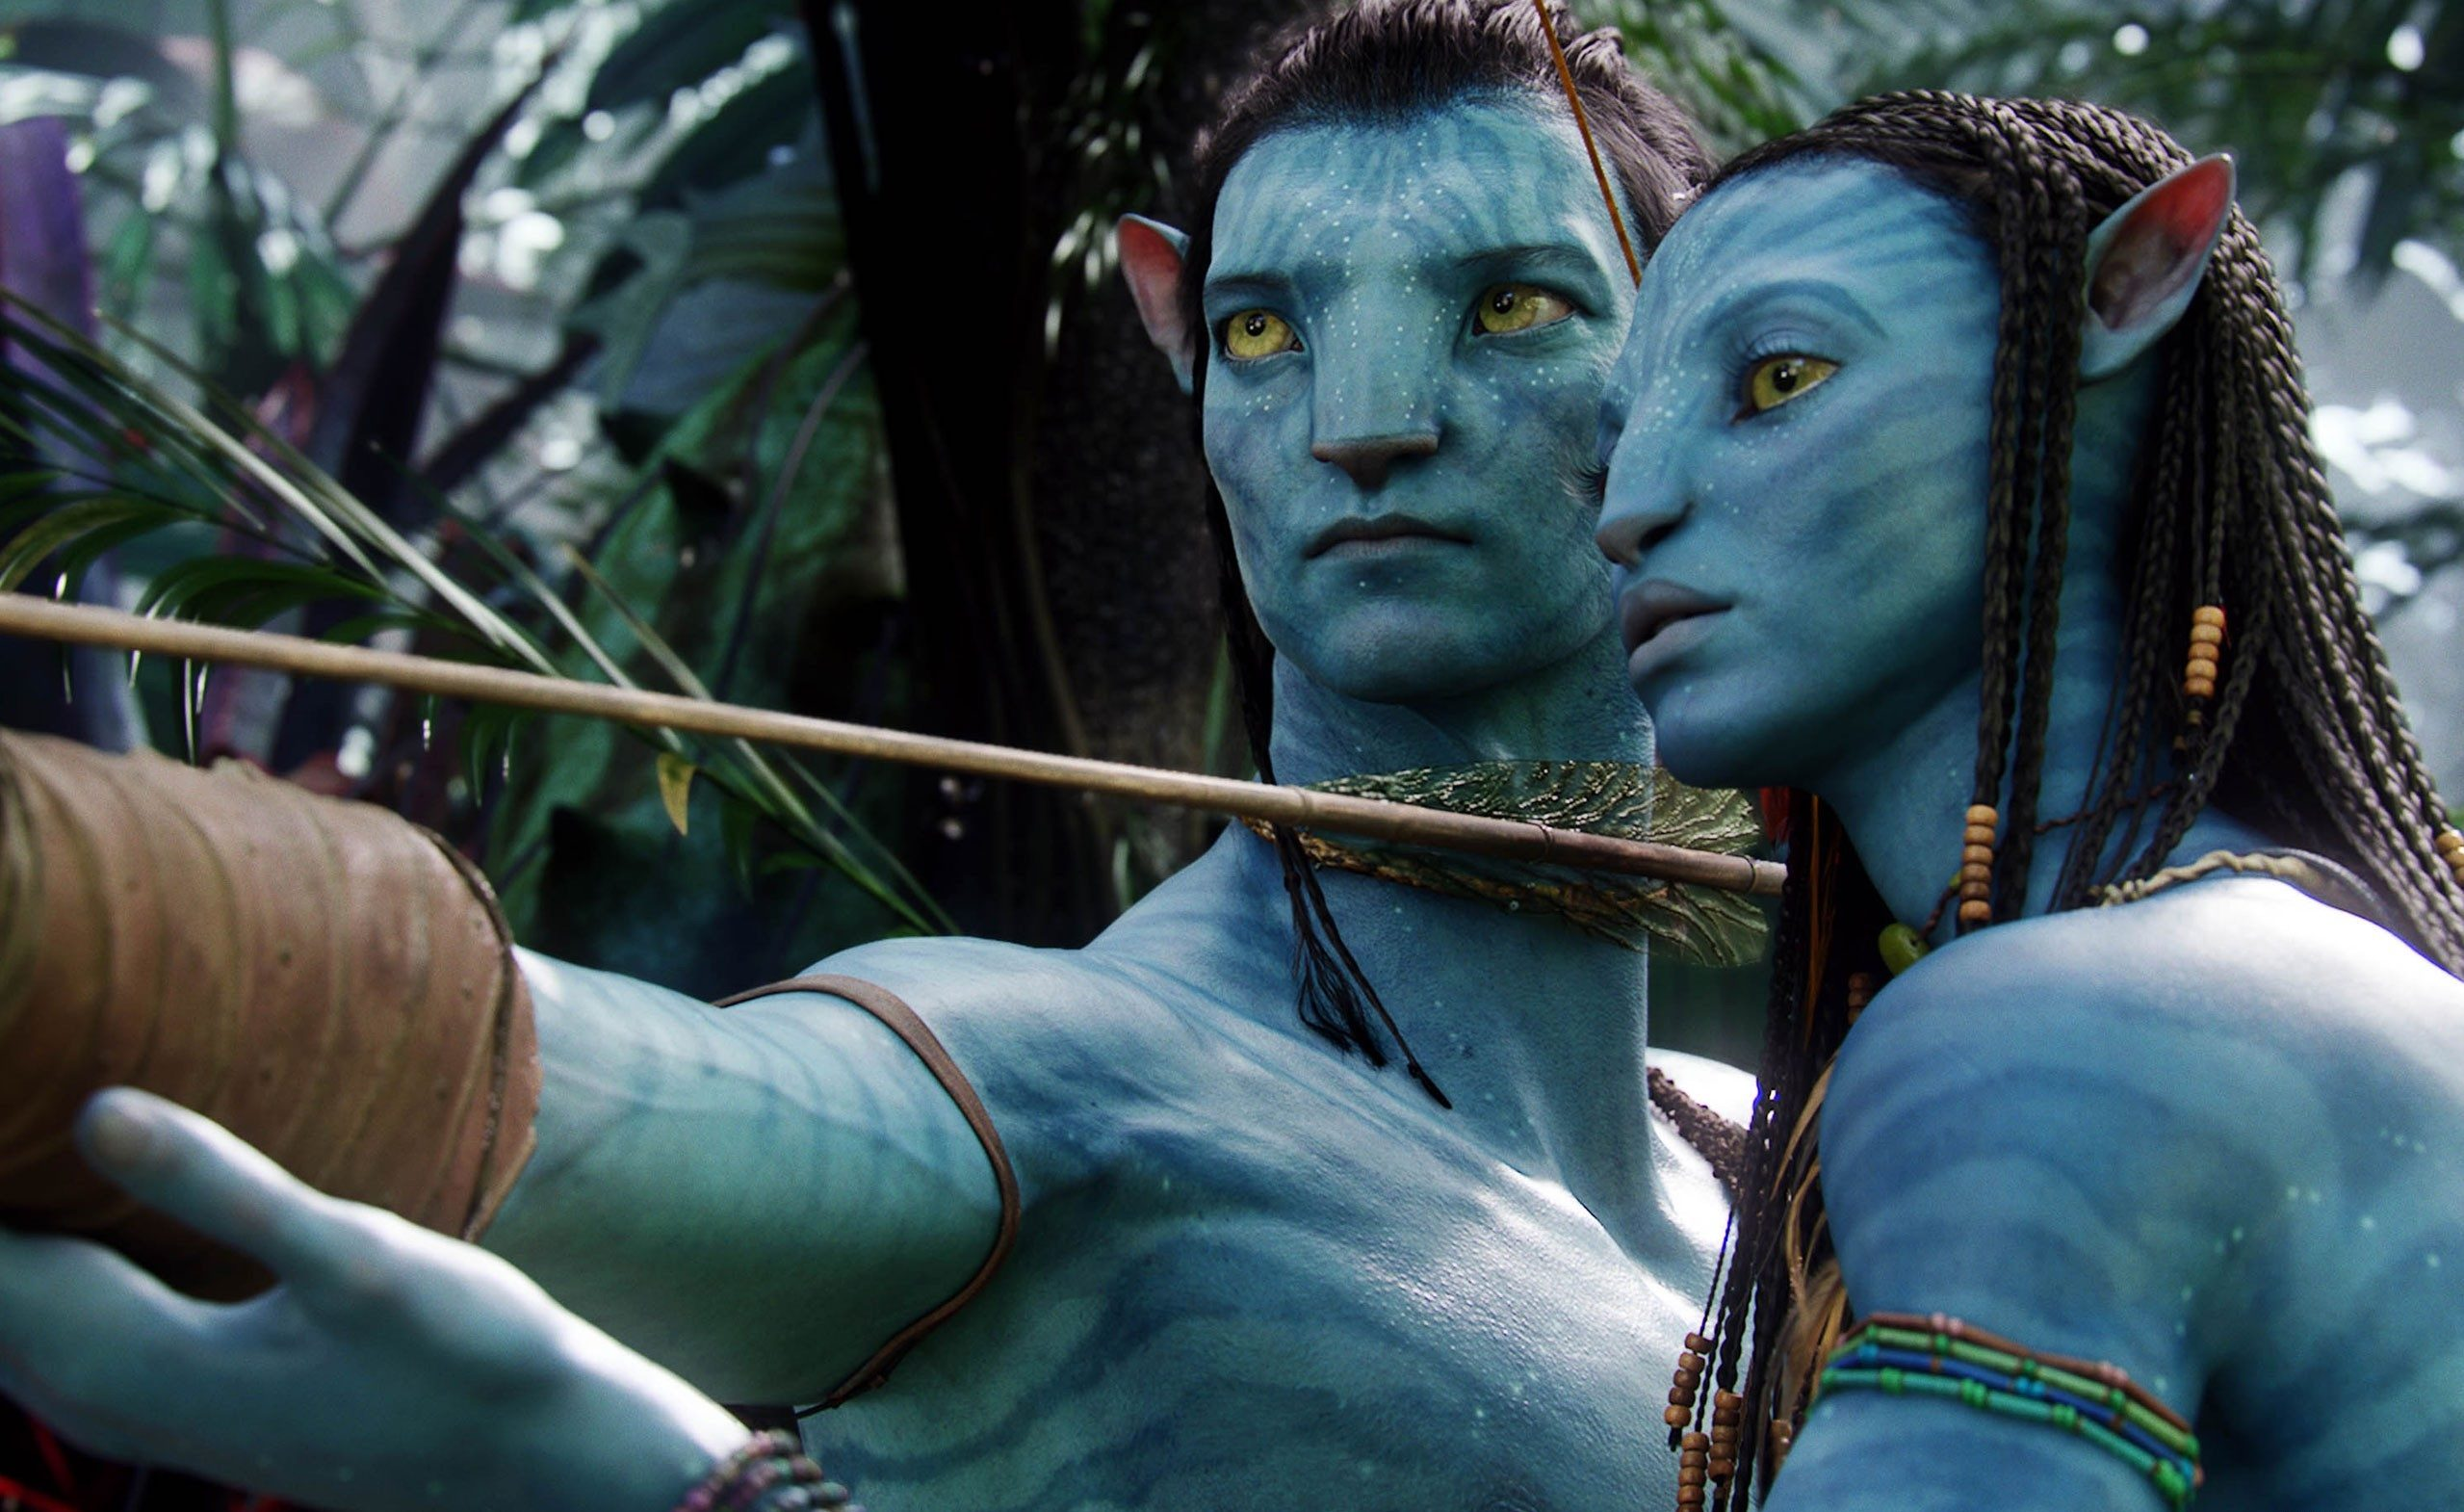 Release Date for 'Avatar 2' Pushed back to 2021